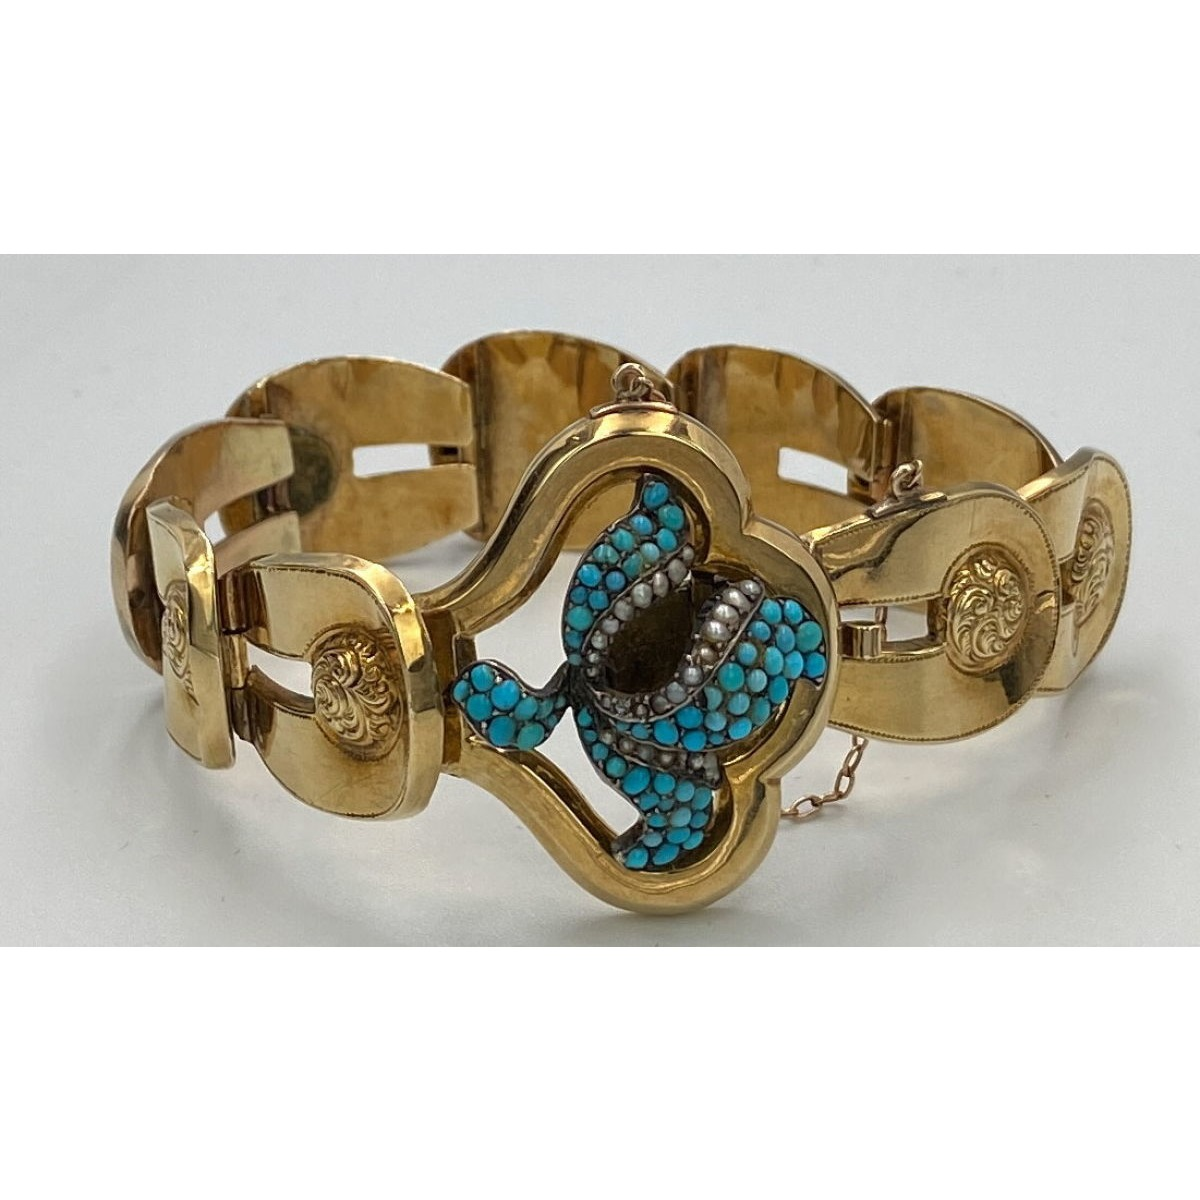 Statement 15kt Gold Bold Link Antique English Bracelet w. Turquoise and Seed Pearls